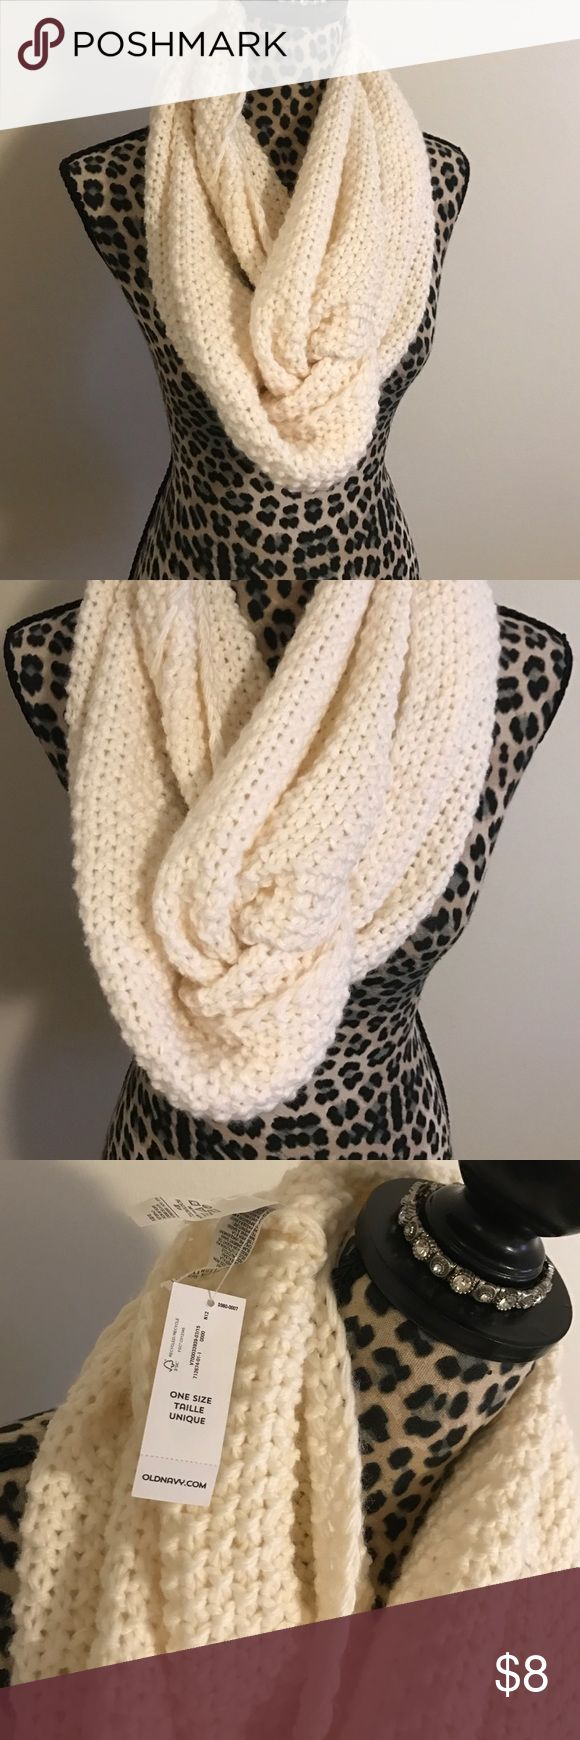 Cream Crochet scarf new with tags Cream Crochet scarf new with tags Old Navy Accessories Scarves & Wraps